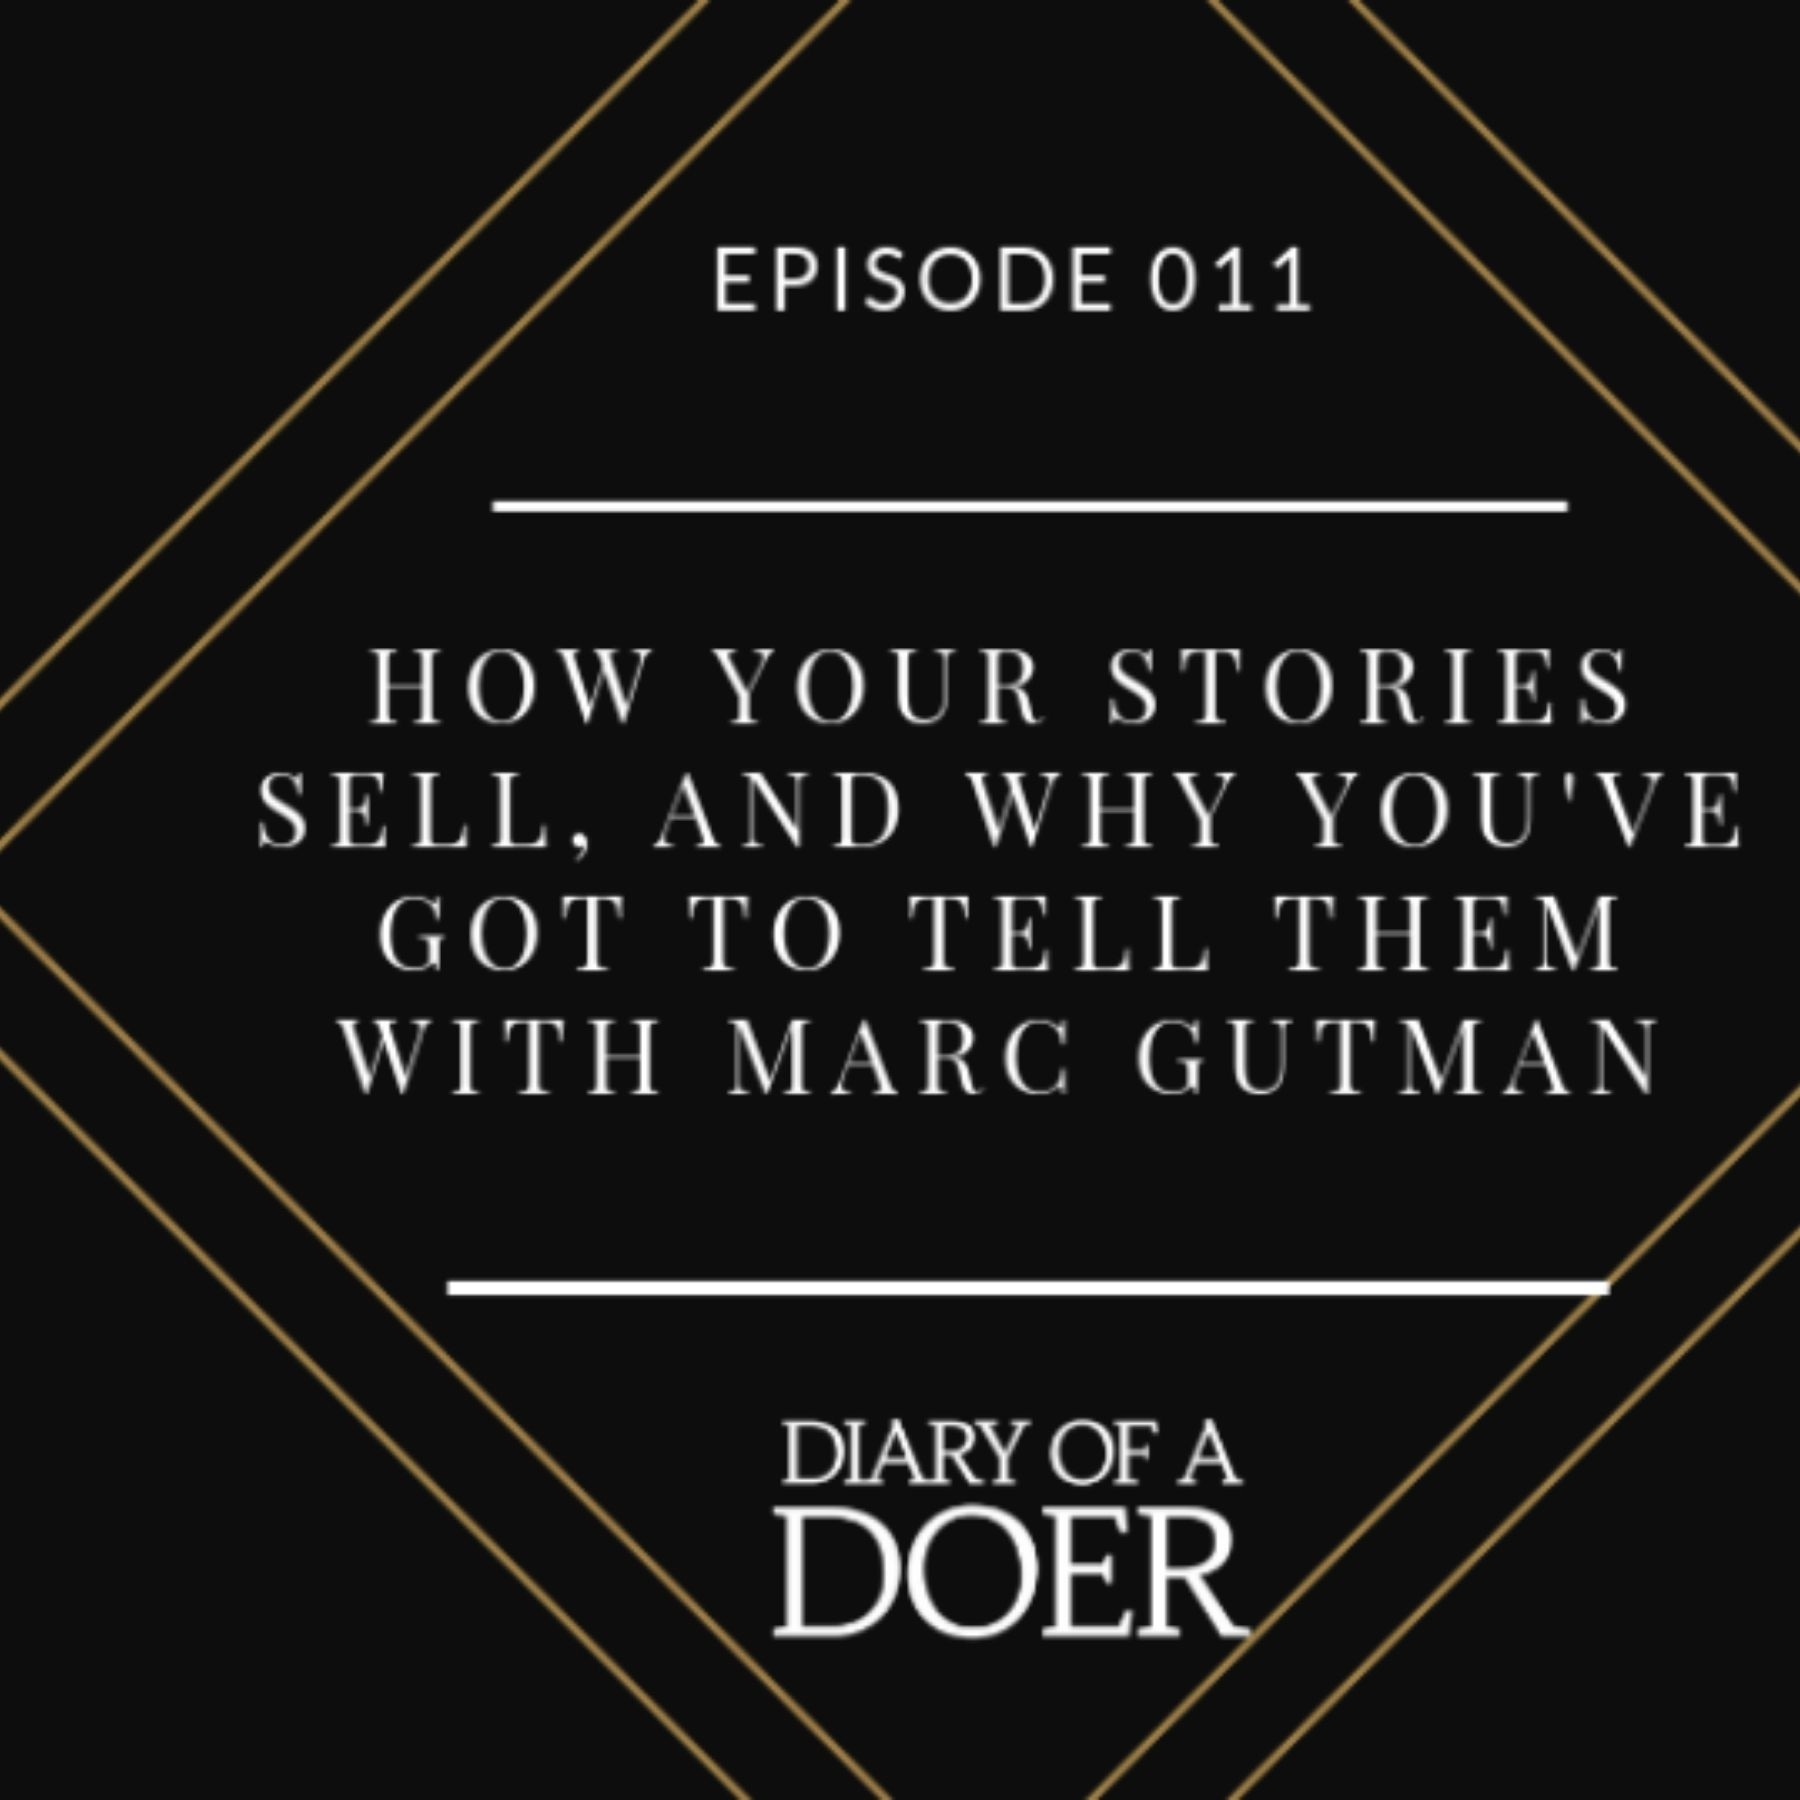 Diary of a Doer Episode 011: How Your Stories Sell, and Why You've Got to Tell Them with Marc Gutman